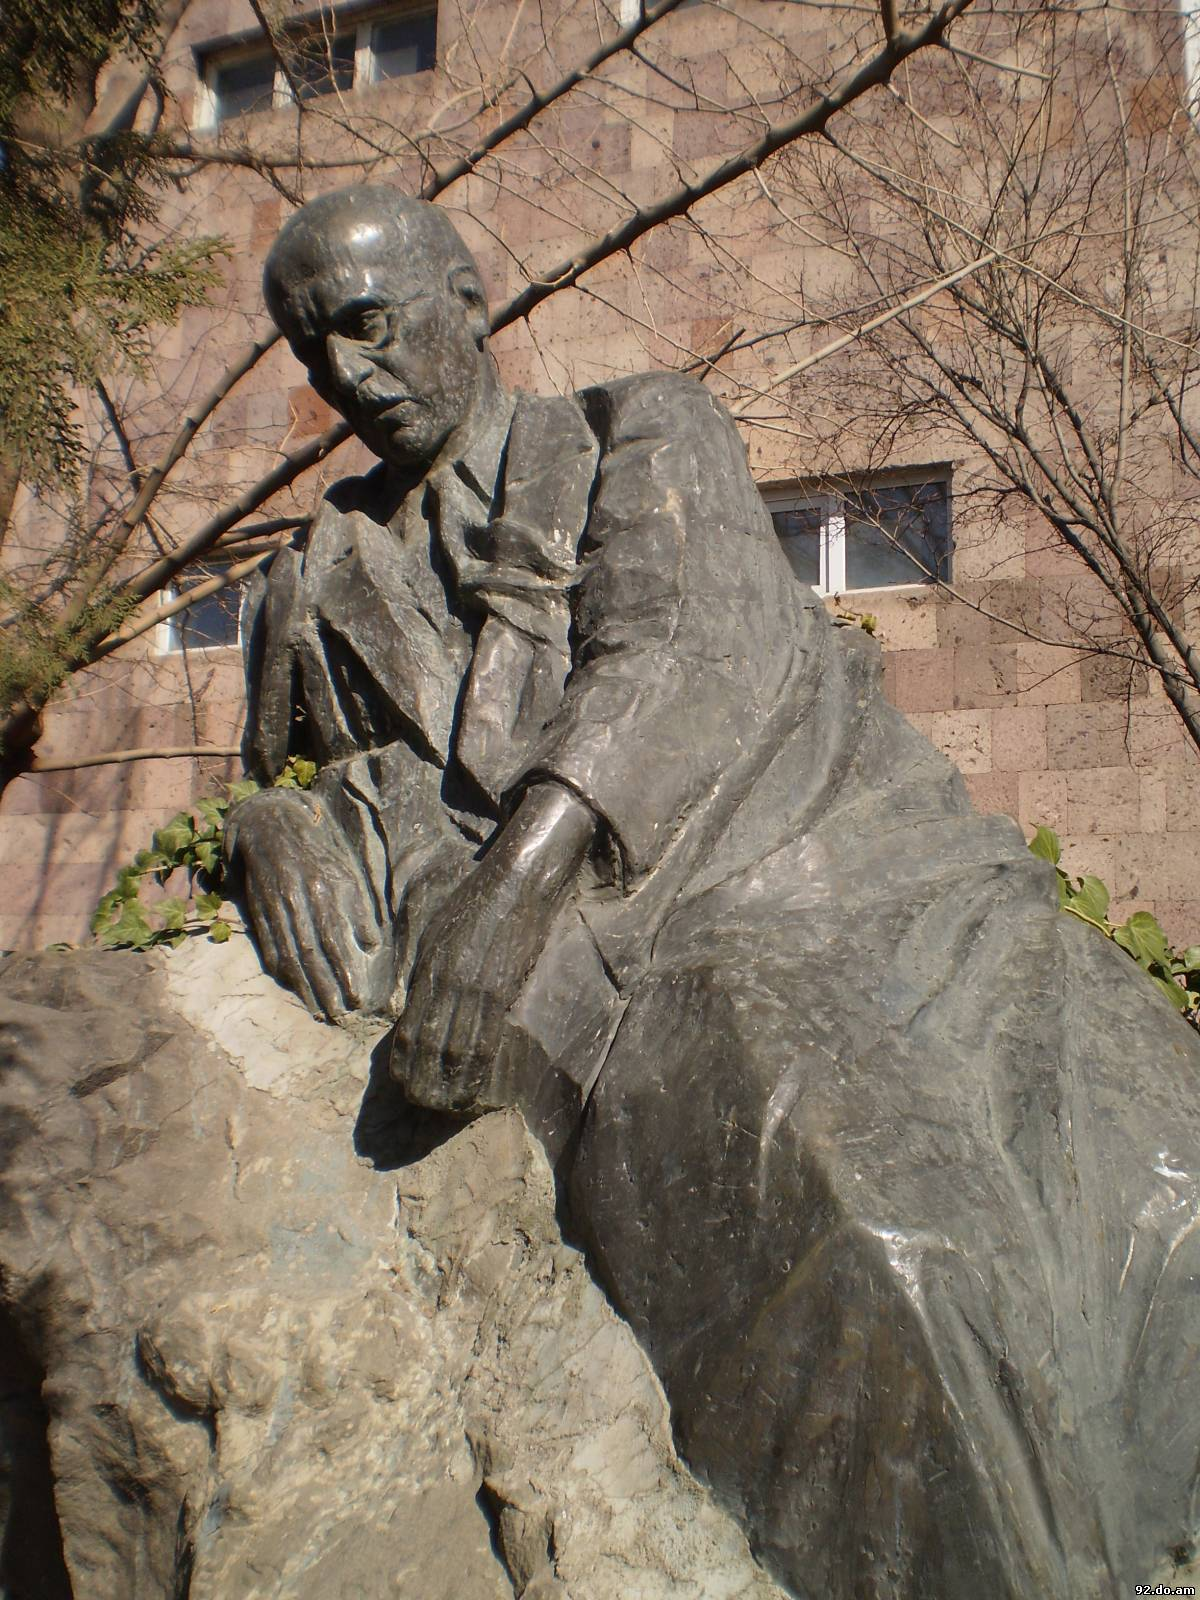 Levon Tokmajyan's statue of Vahan Tekeyan was unveiled in a grove of trees next to the eponymous school in 1990.